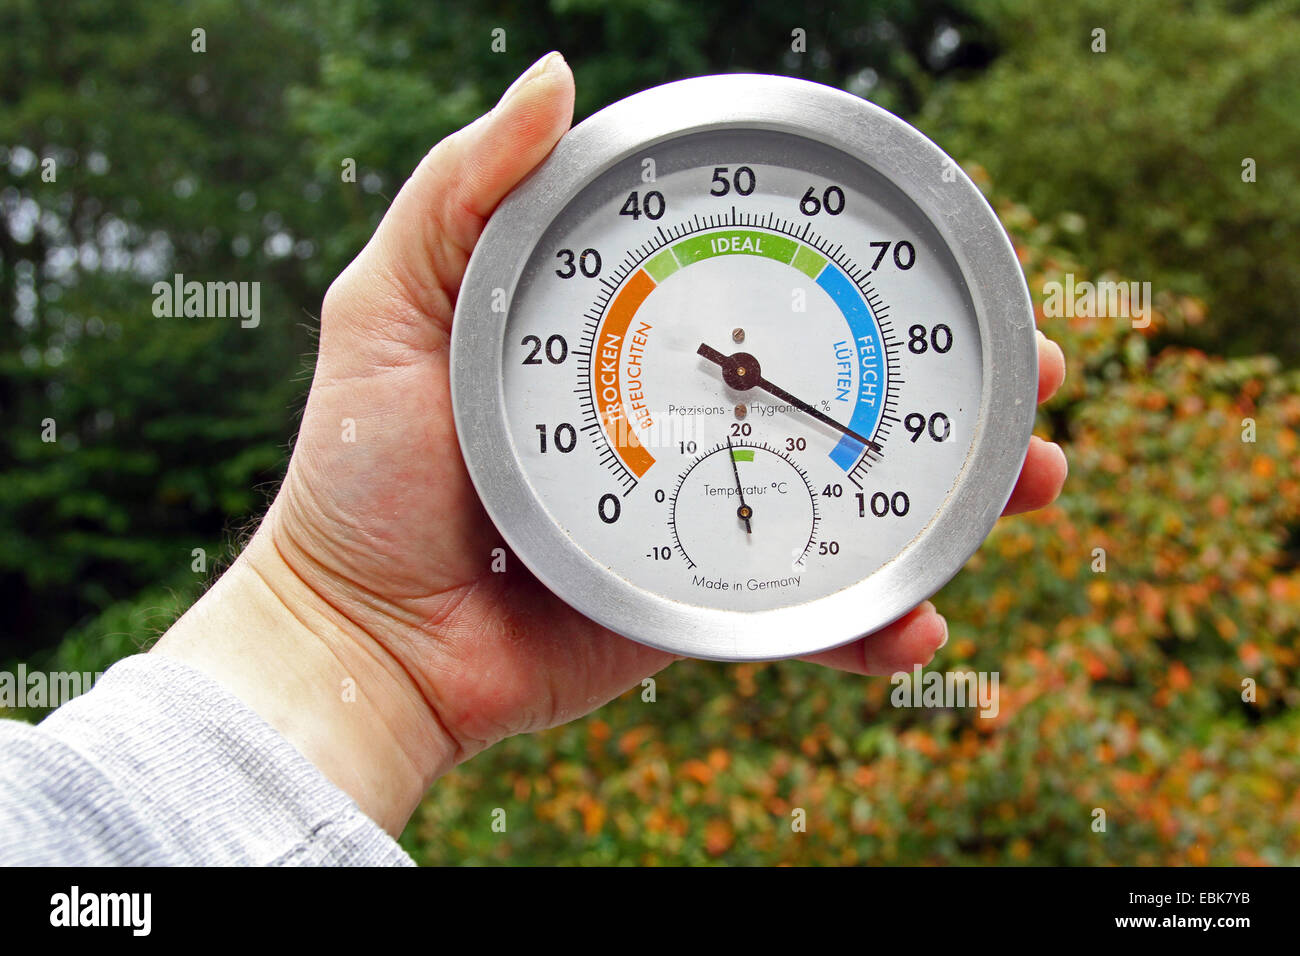 hygrometer measuring the air humidity - Stock Image